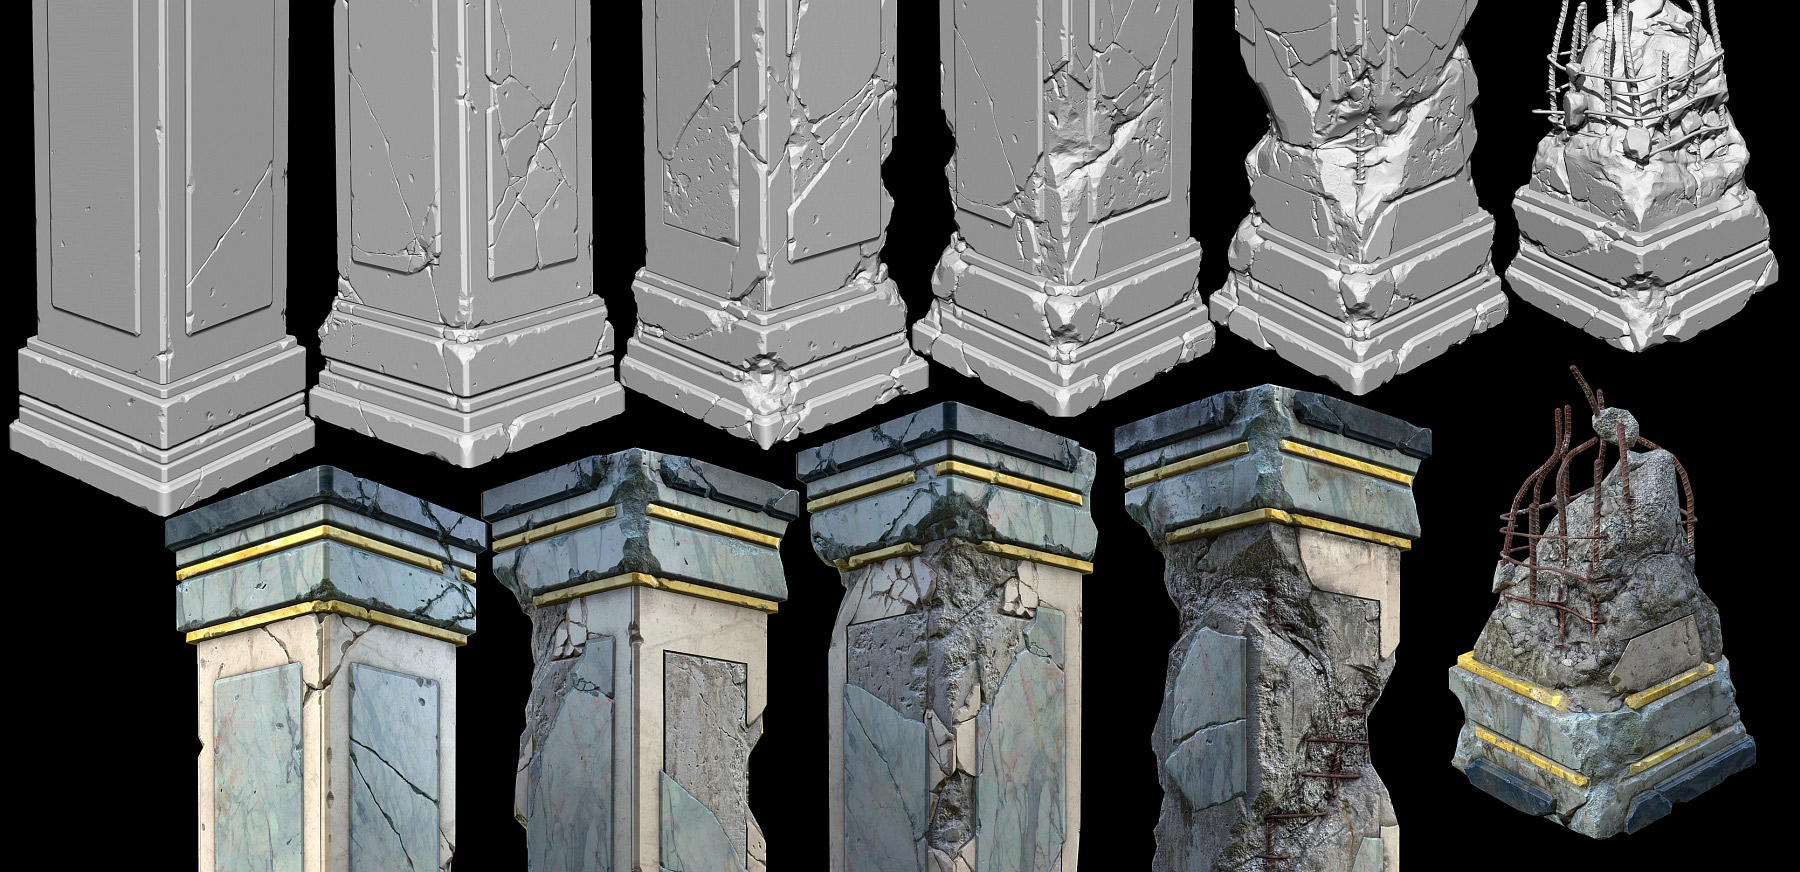 Broken Stone Pillar : Damaged marble pillars including resources zbrushes